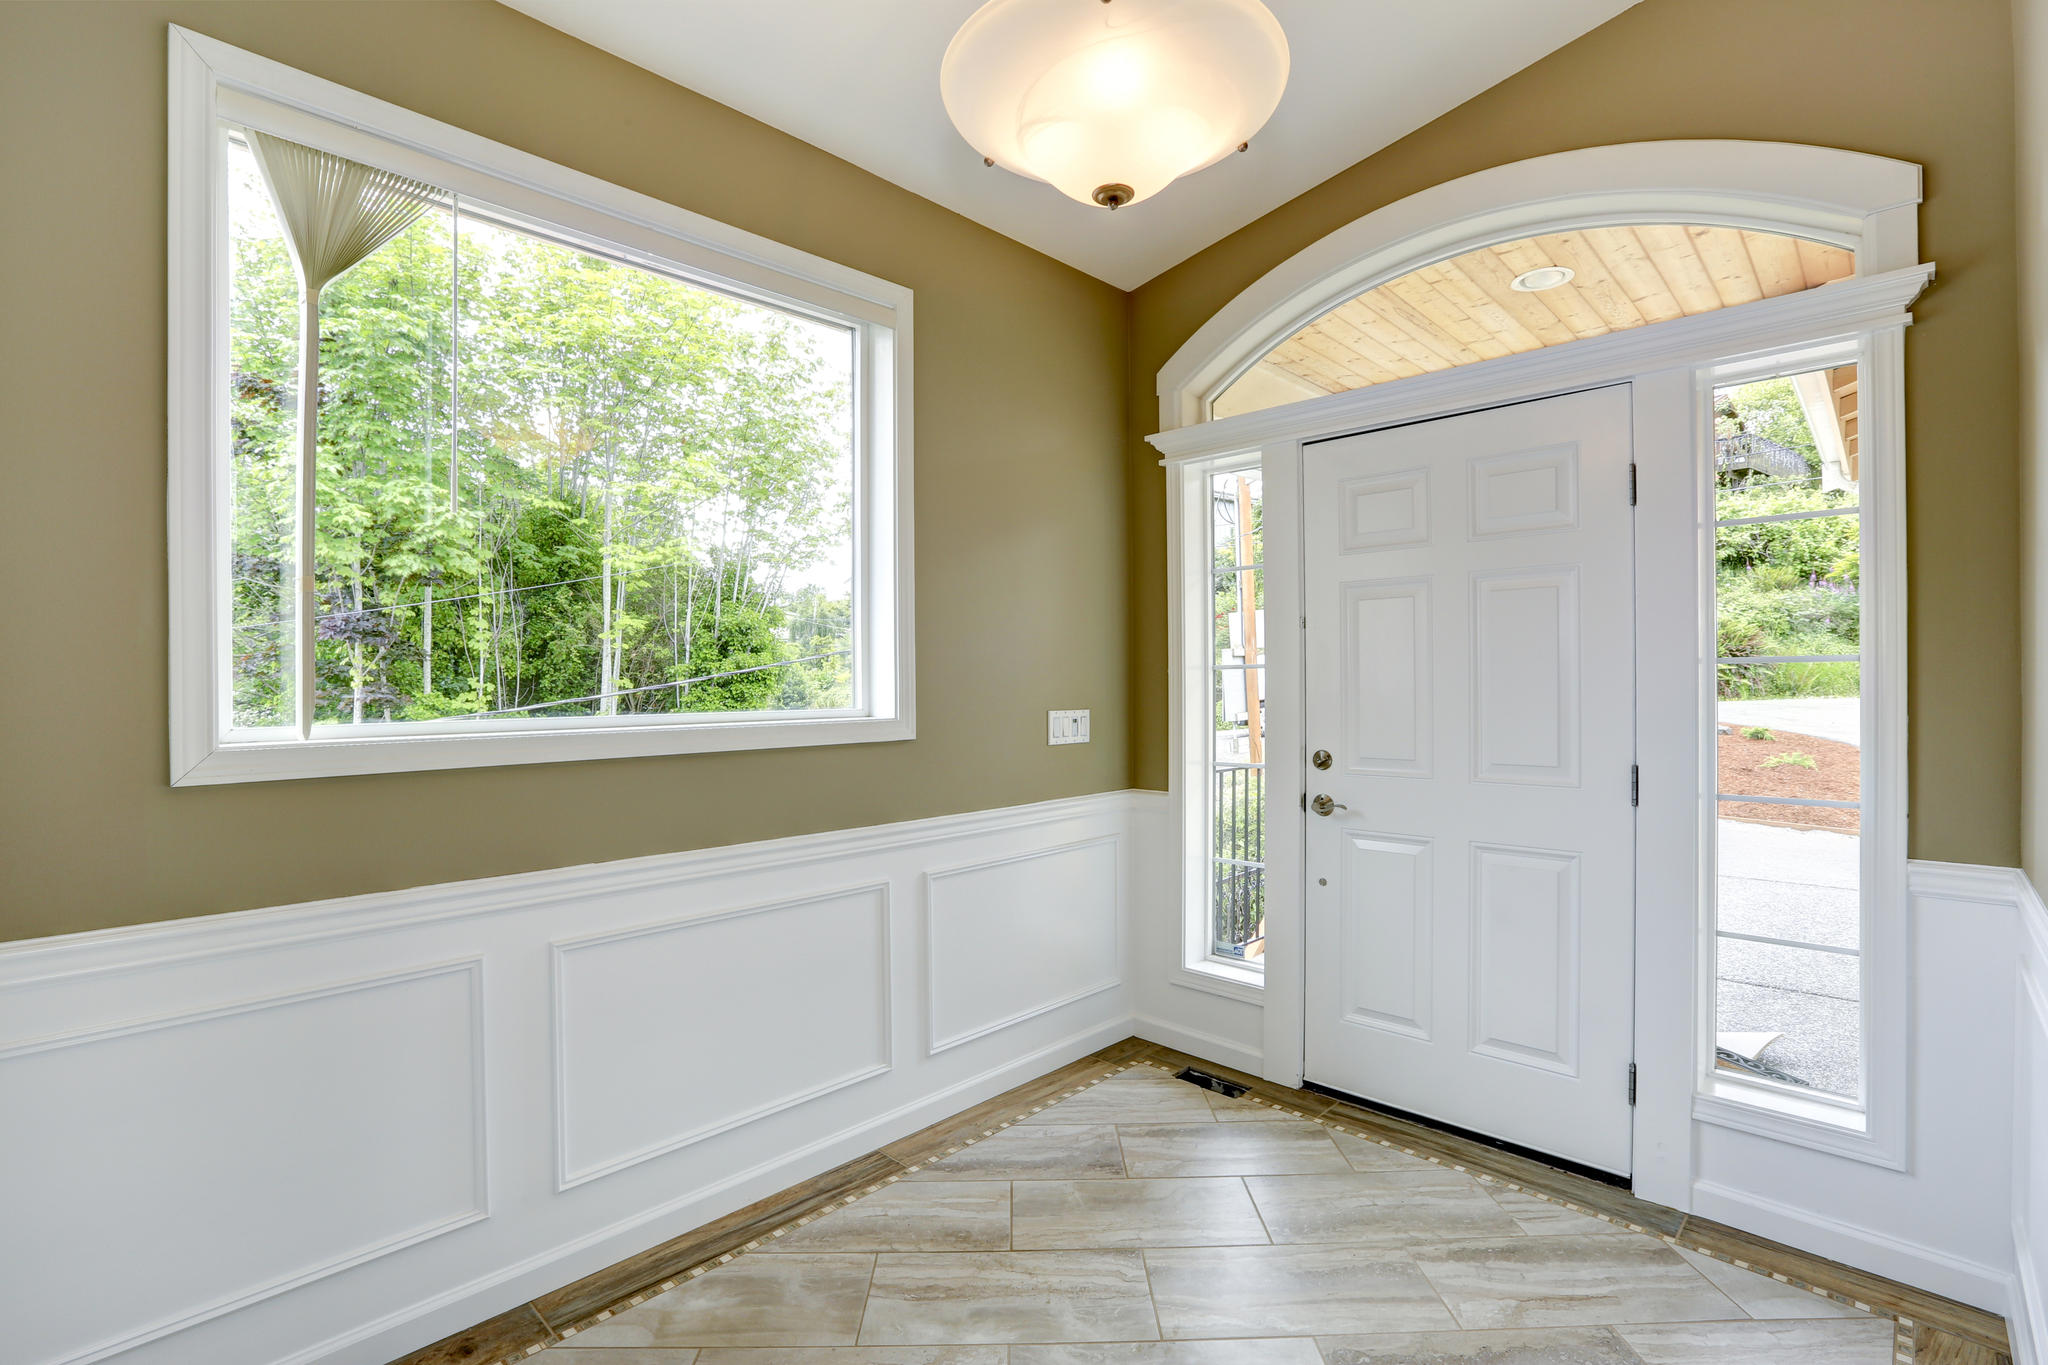 How To Match Your Interior Trim To Your Home Style